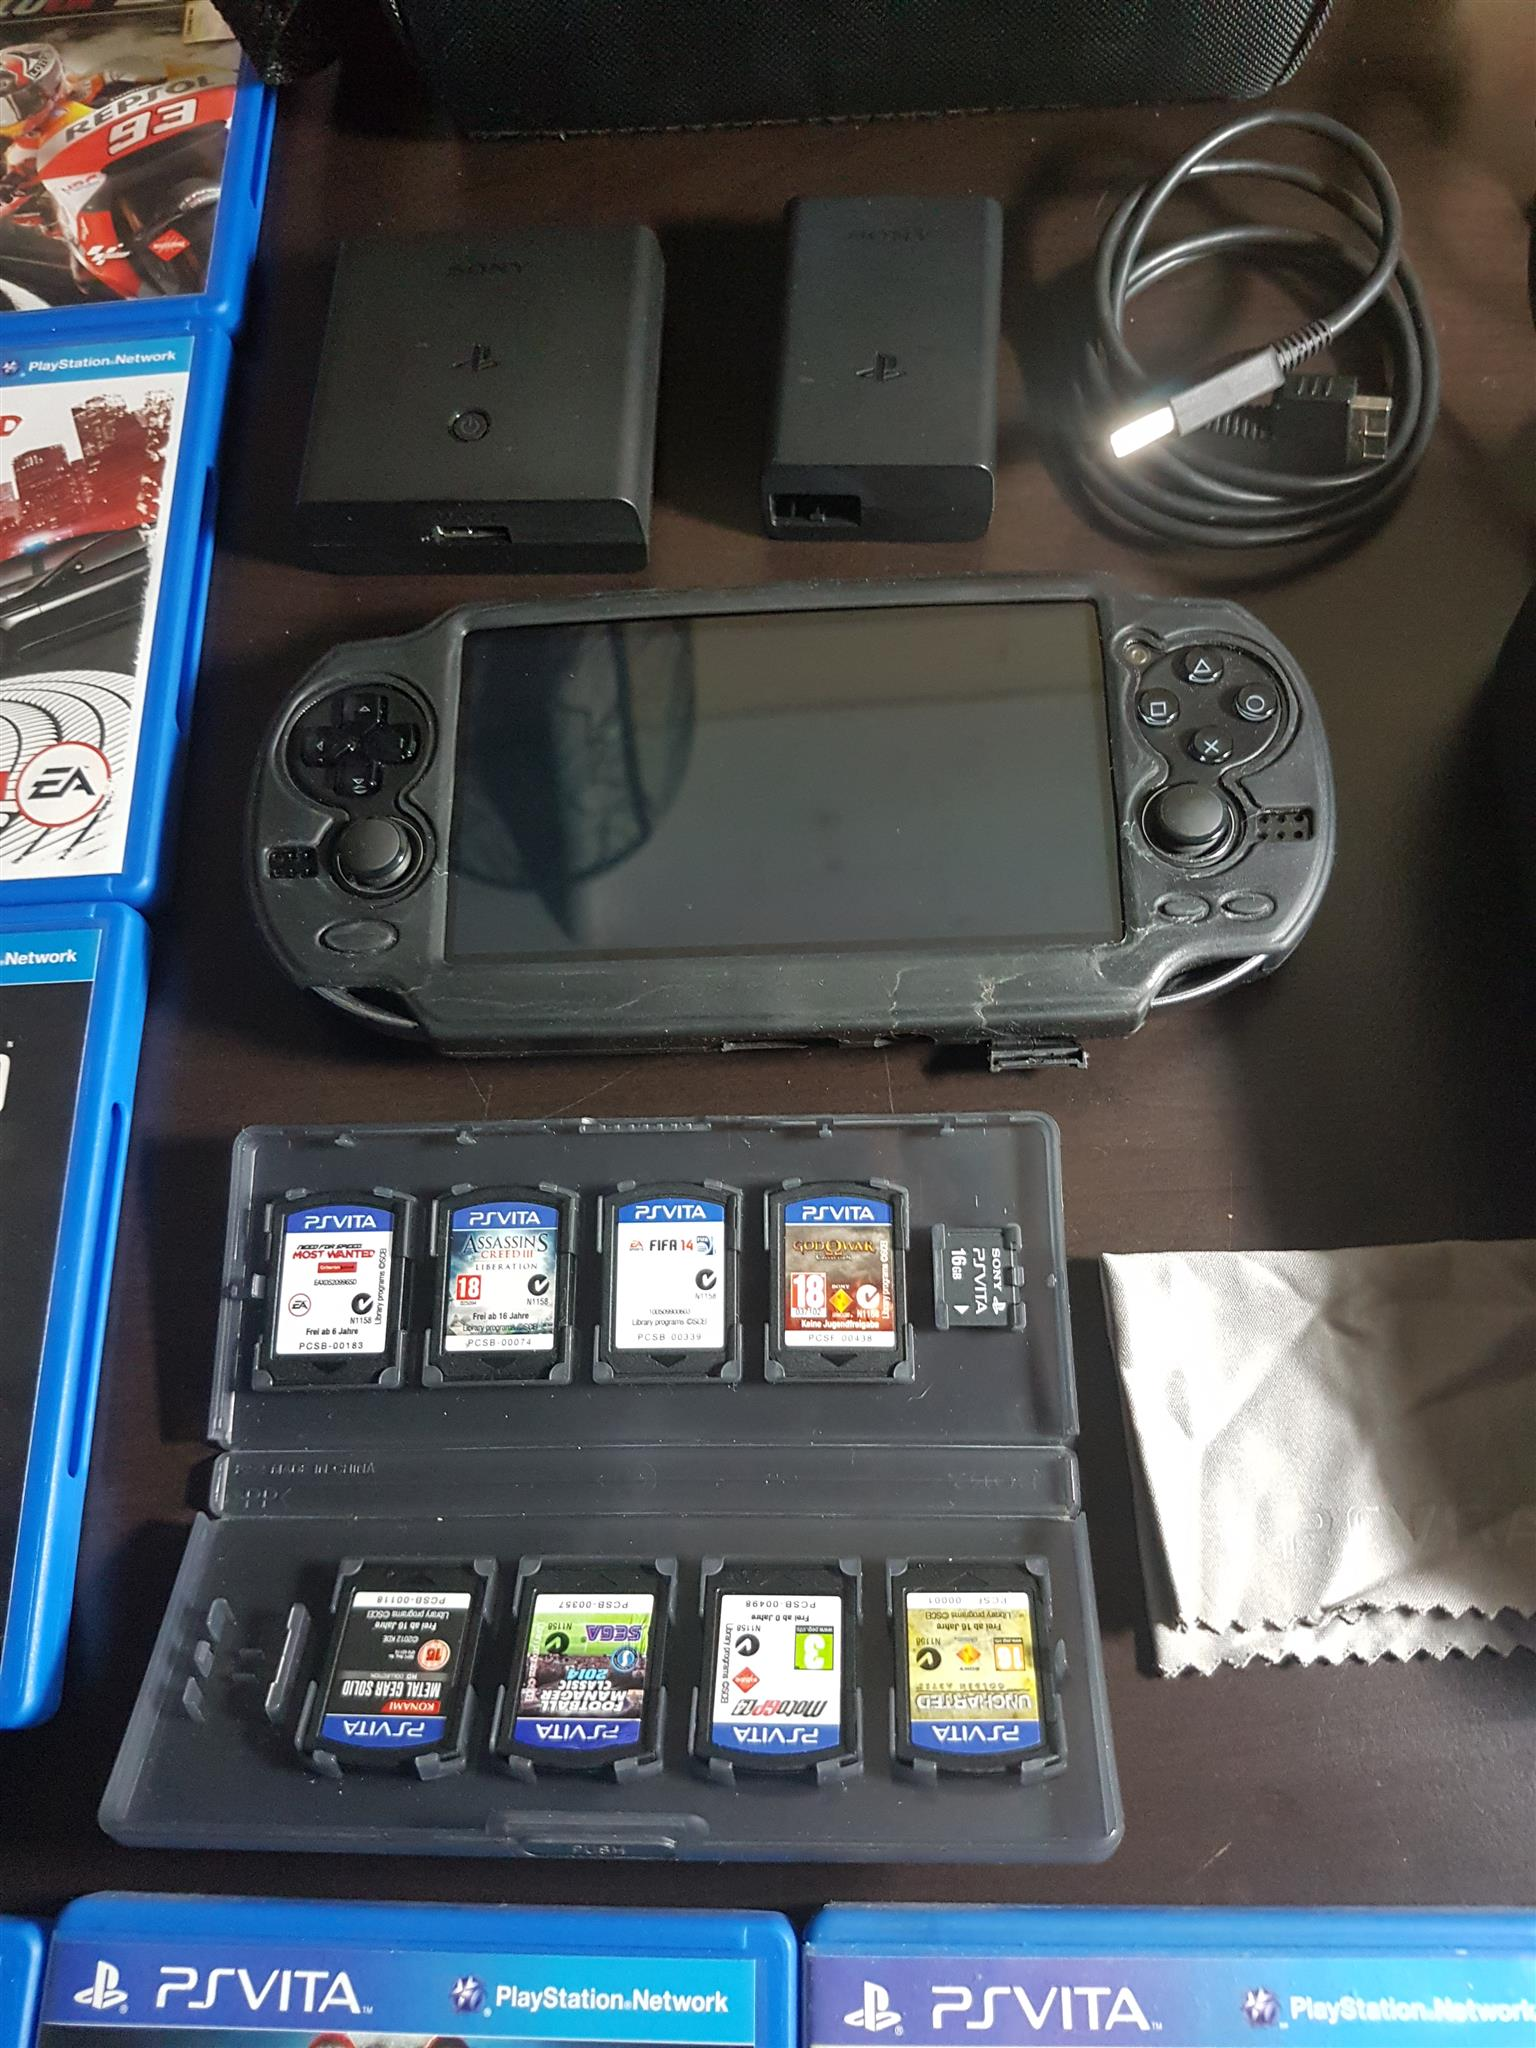 Sony PS VITA for SALE in excellent condition